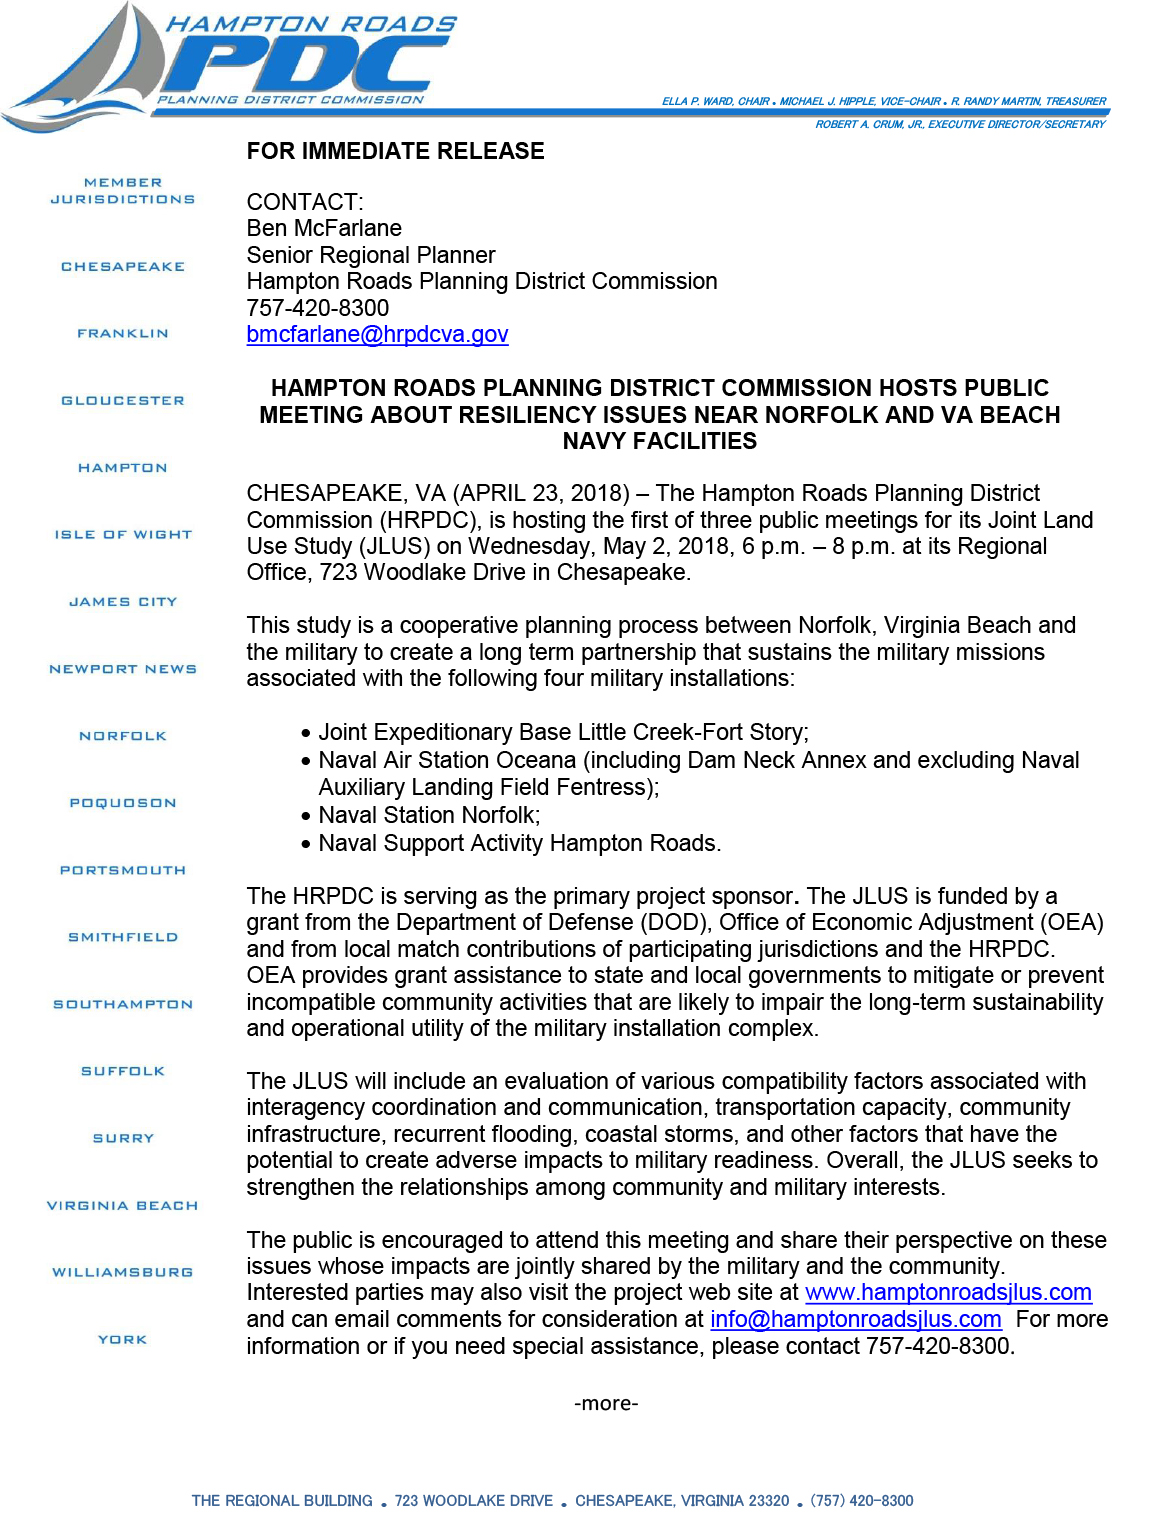 HRPDC Press Release Announcing May 2, 2018, Public Meeting for JLUS, Regional Building Chesapeake VA